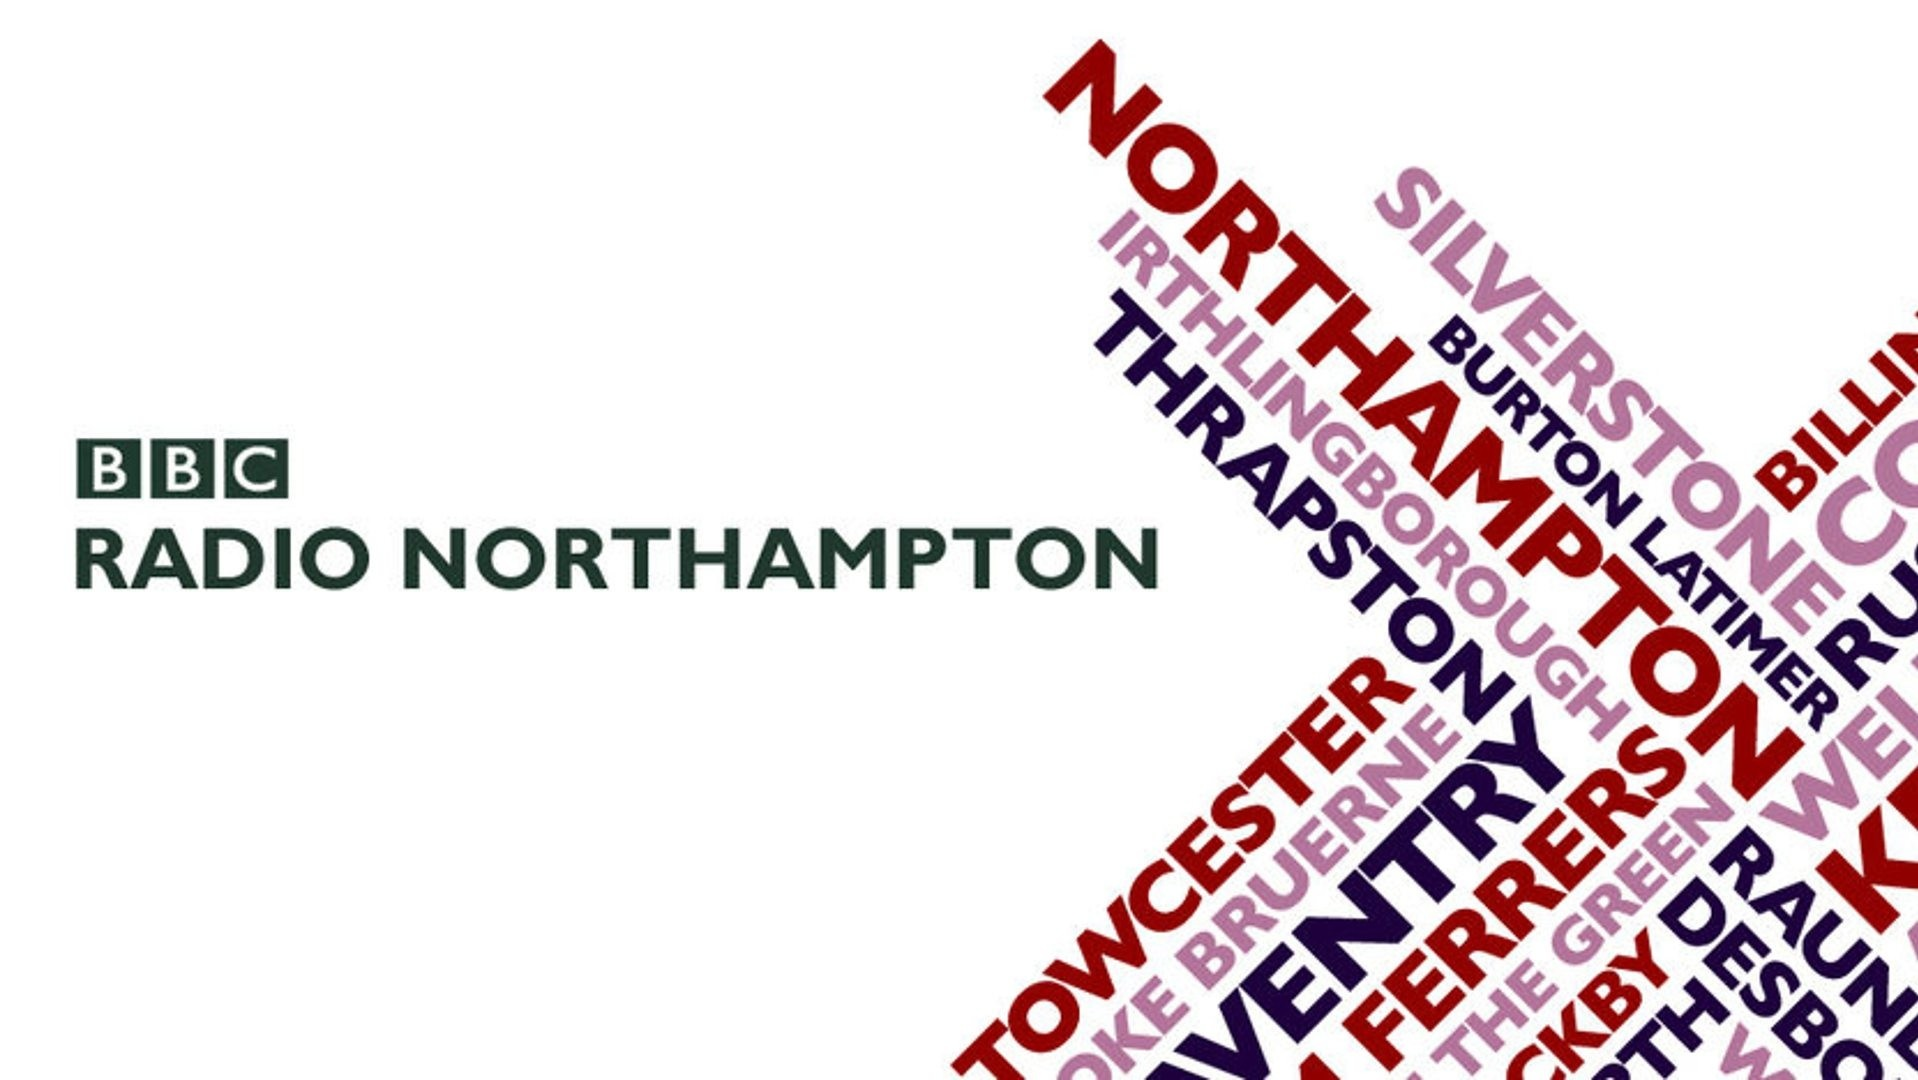 The Midlife Movement BBC Radio Northampton